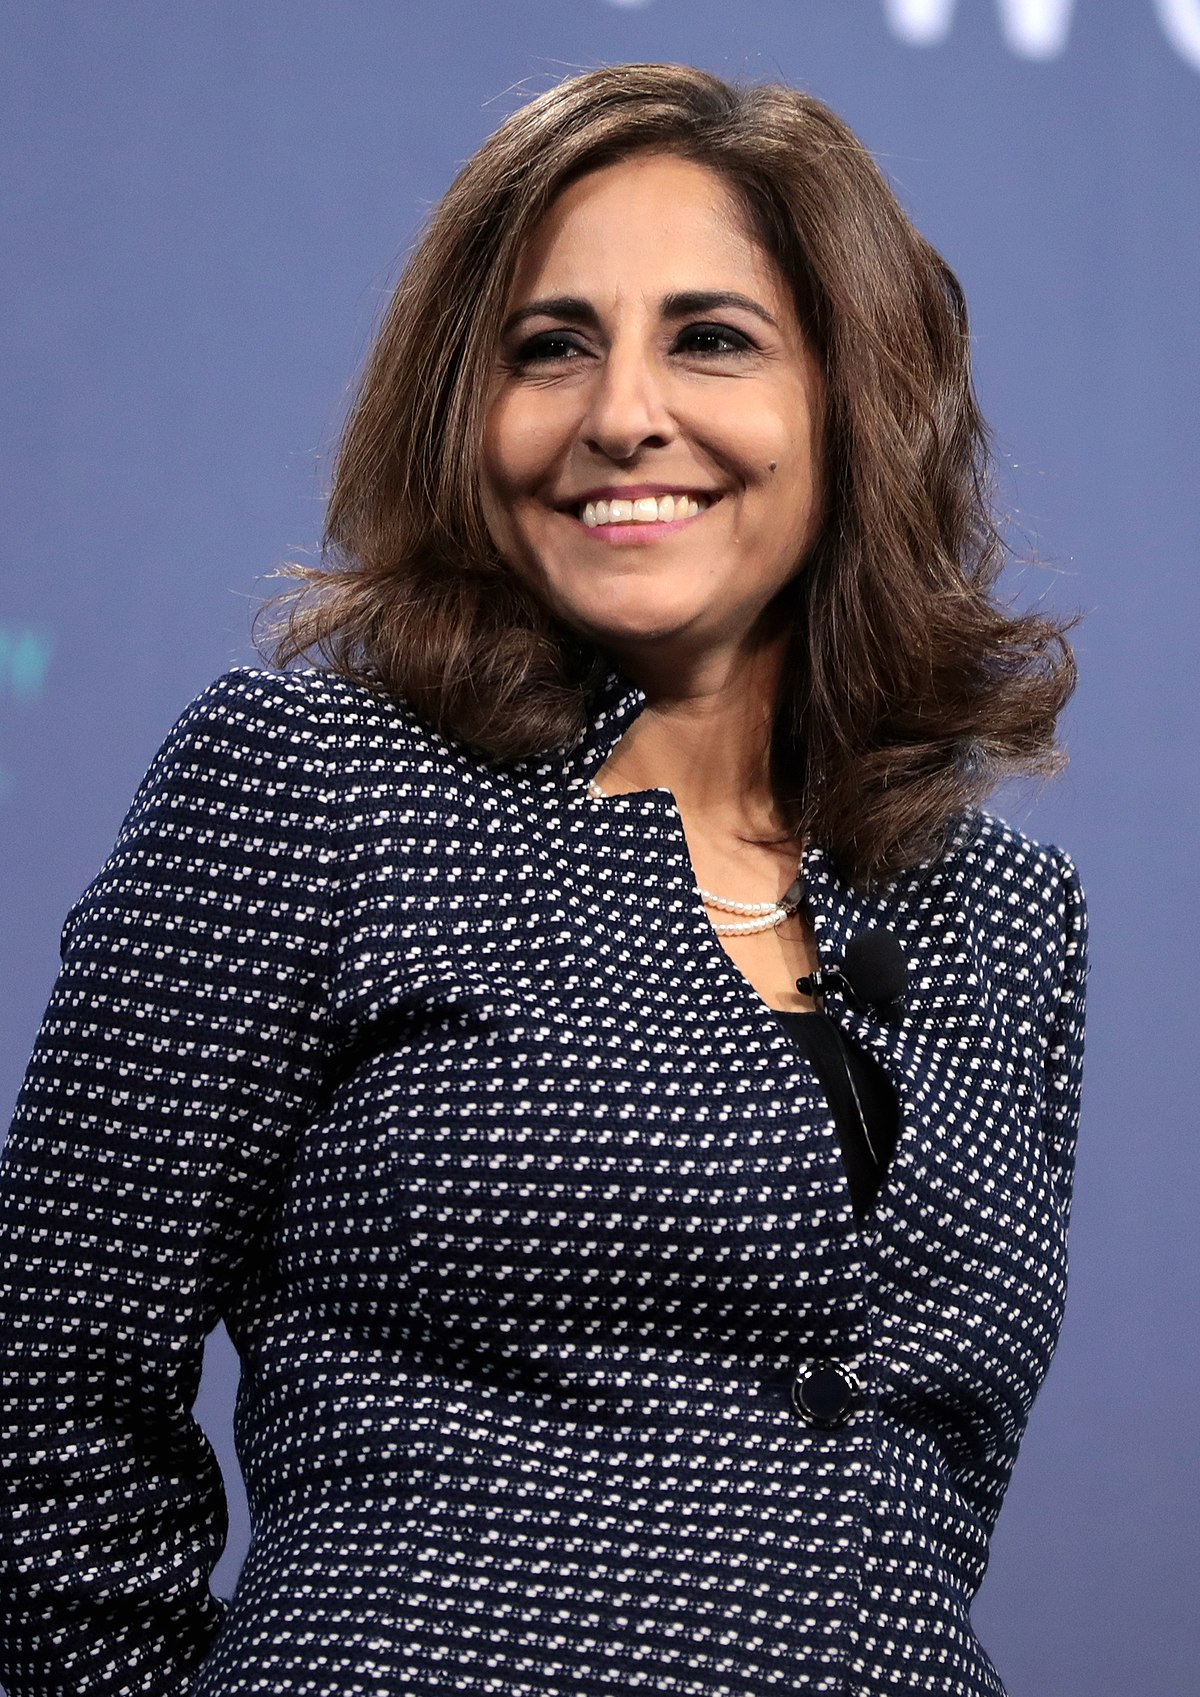 Image Result For Neera Tanden